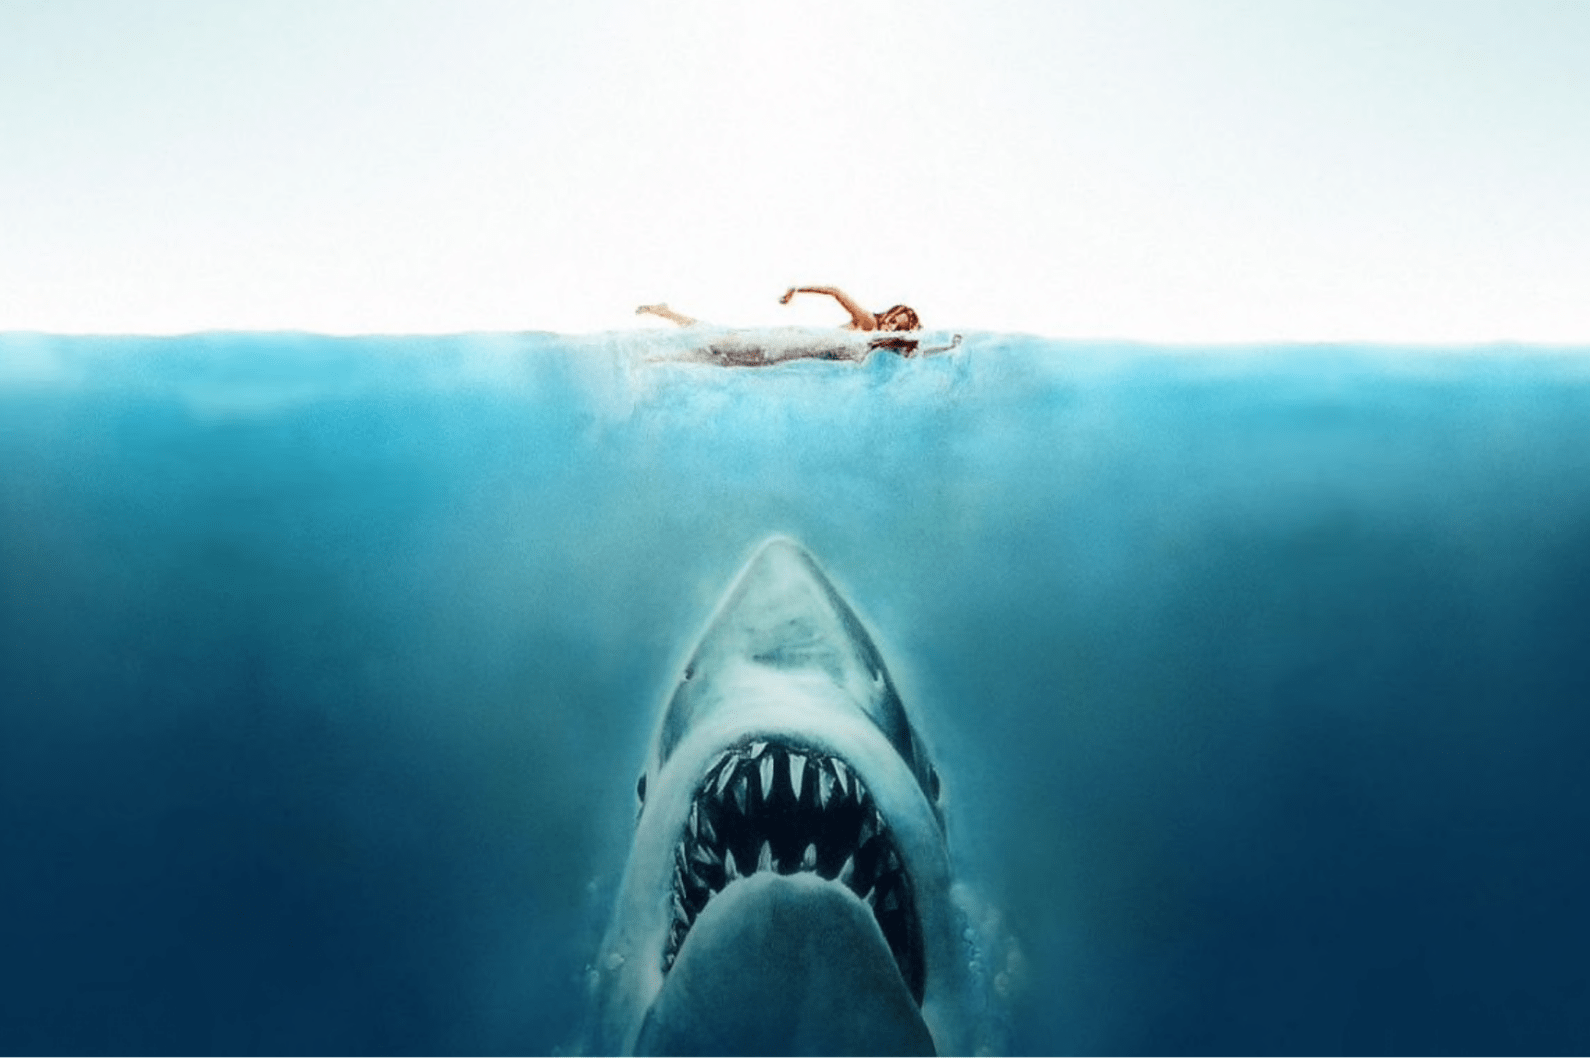 The Genius of Jaws